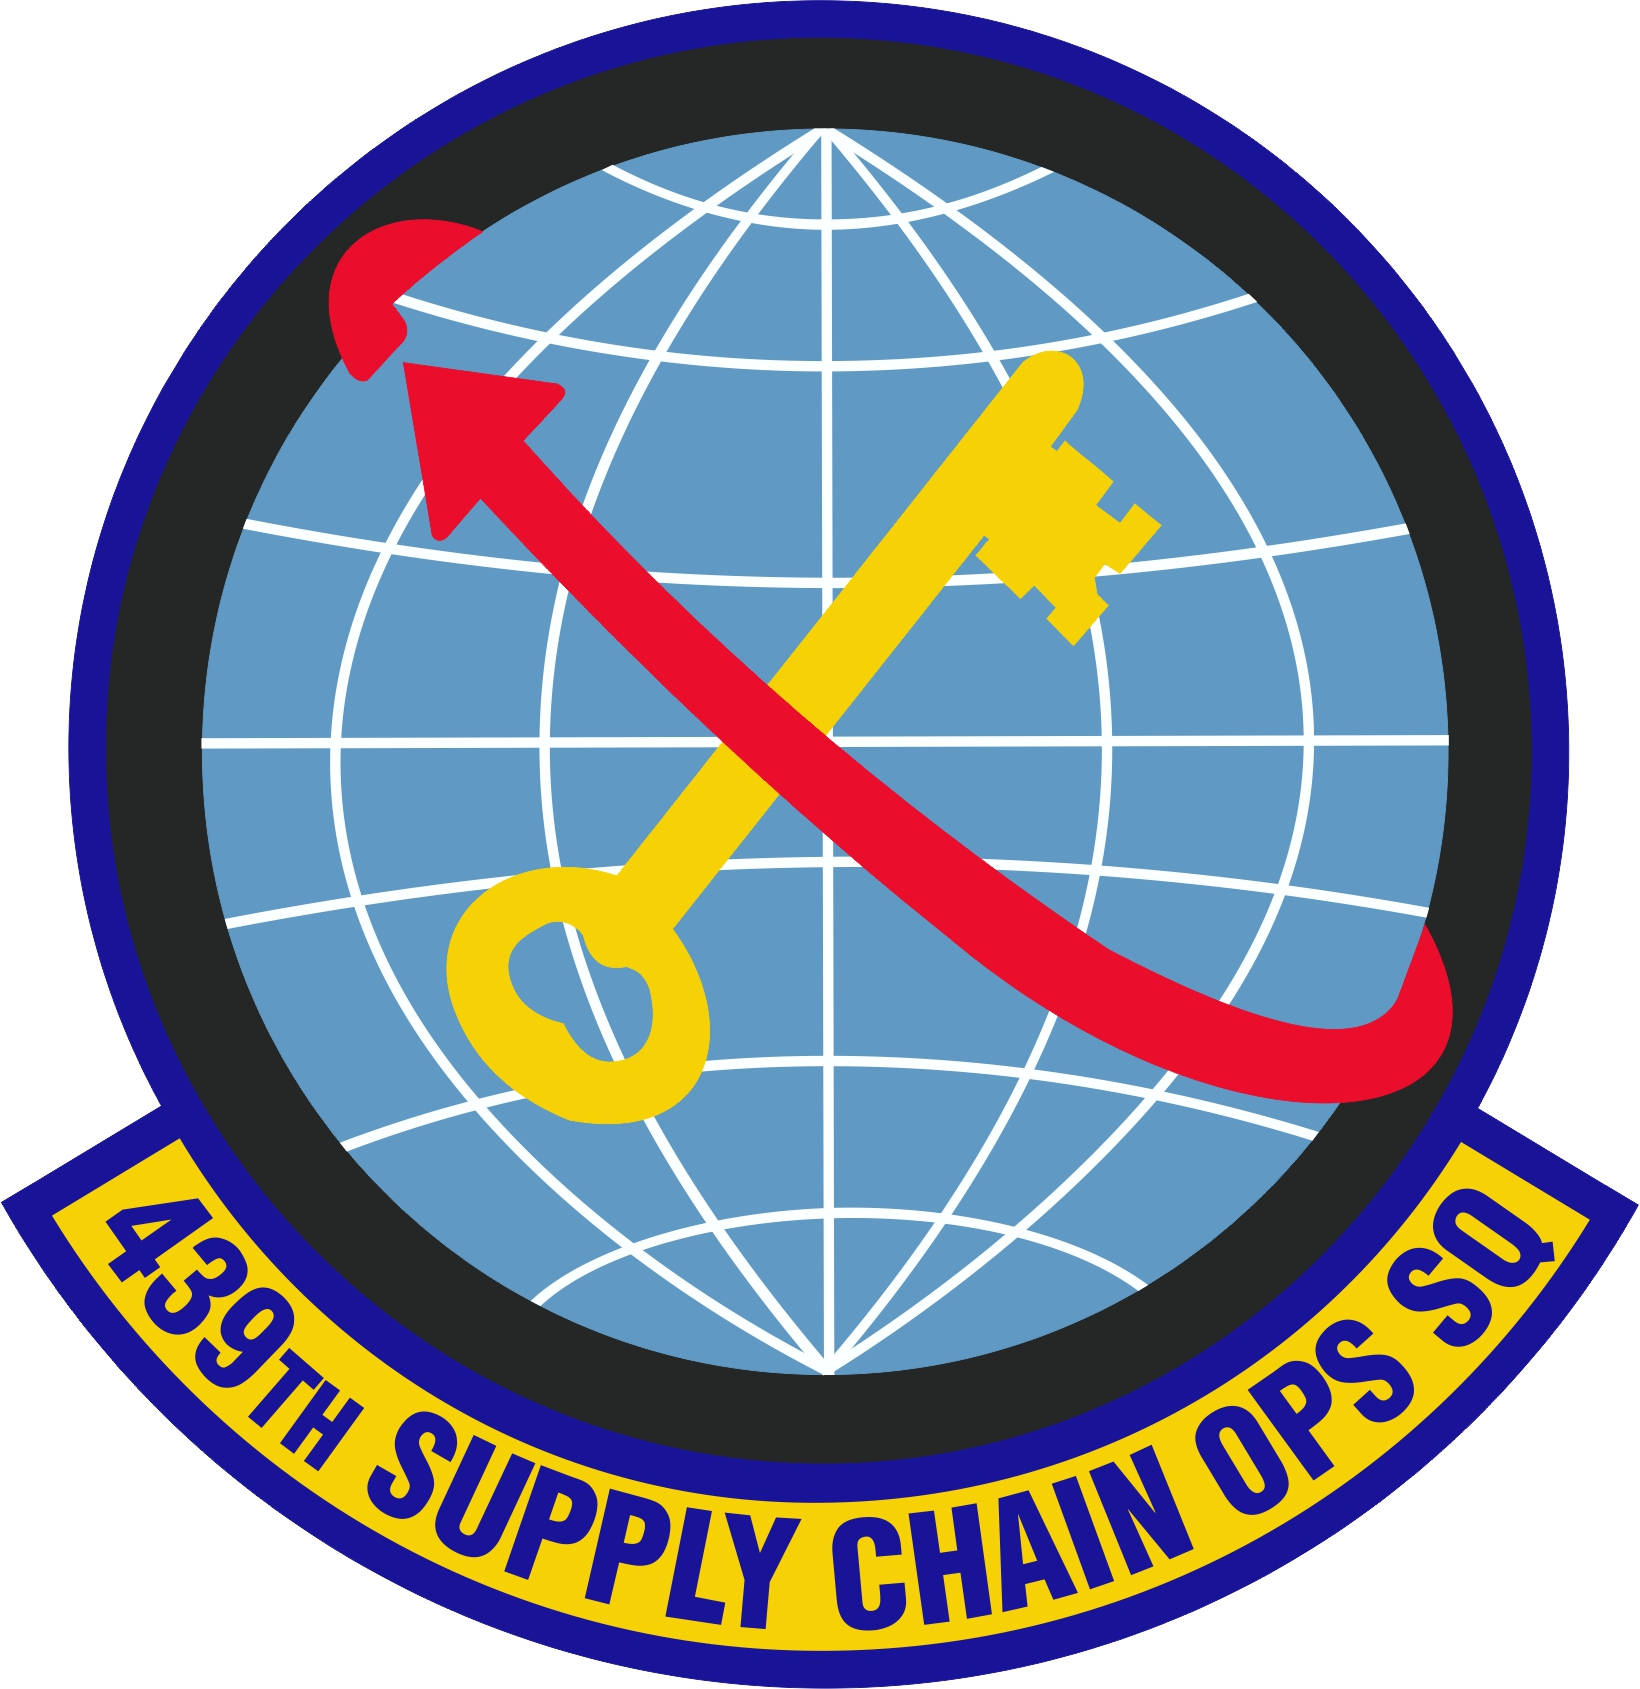 439 Supply Chain Operations Squadron